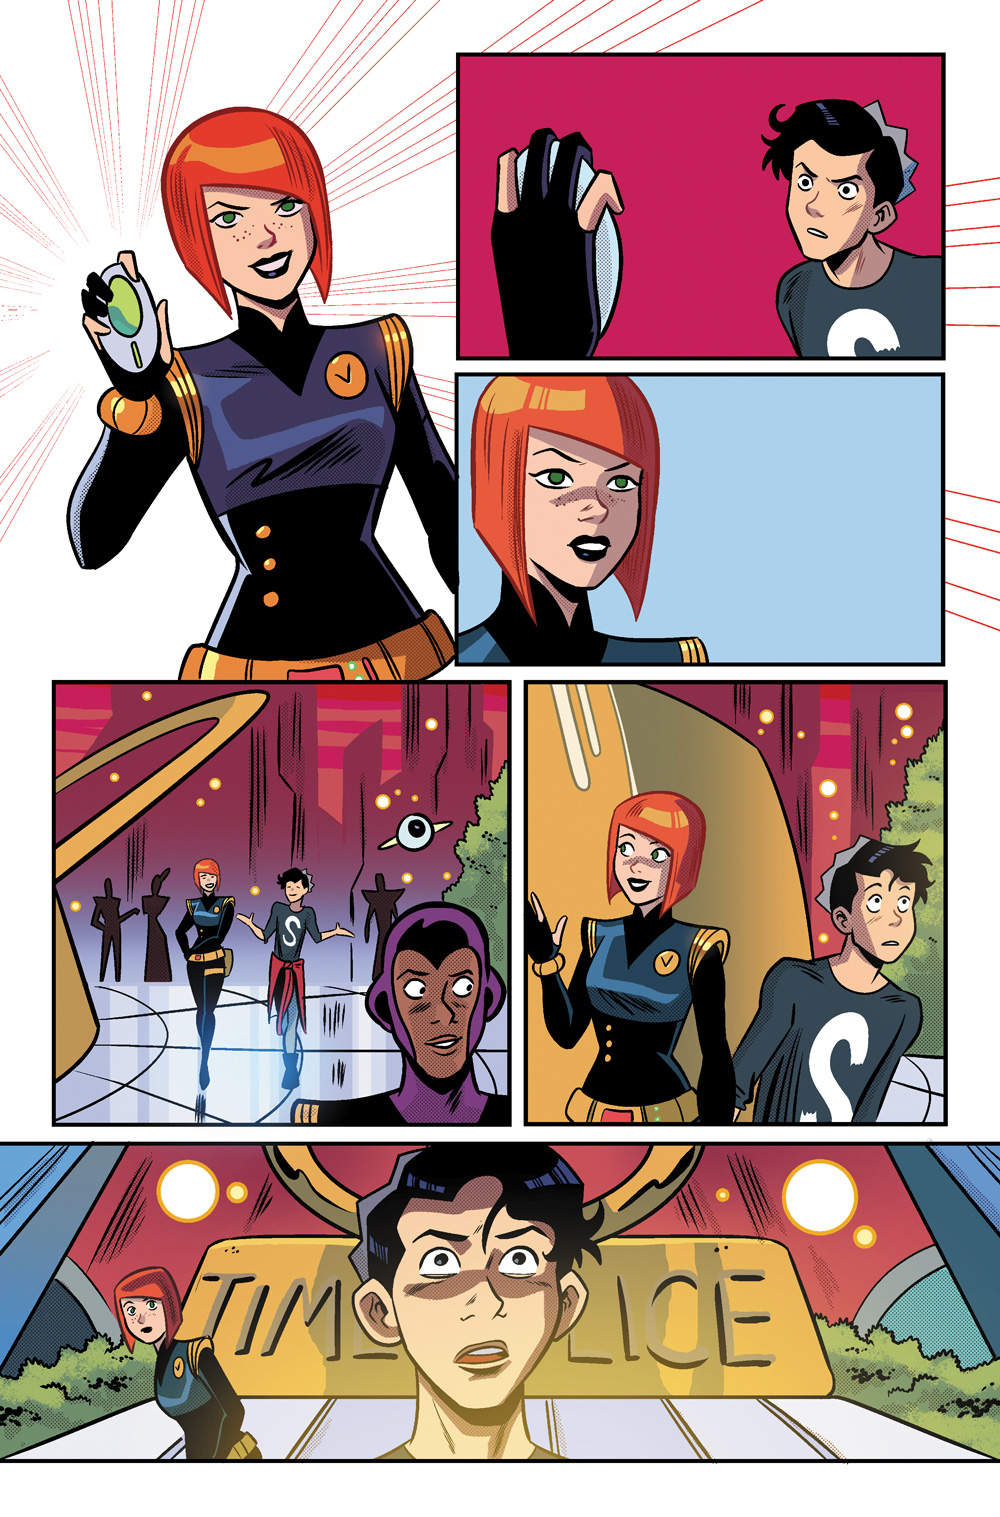 January mentioning the Looper Scooper in Jughead's Time Police #2.